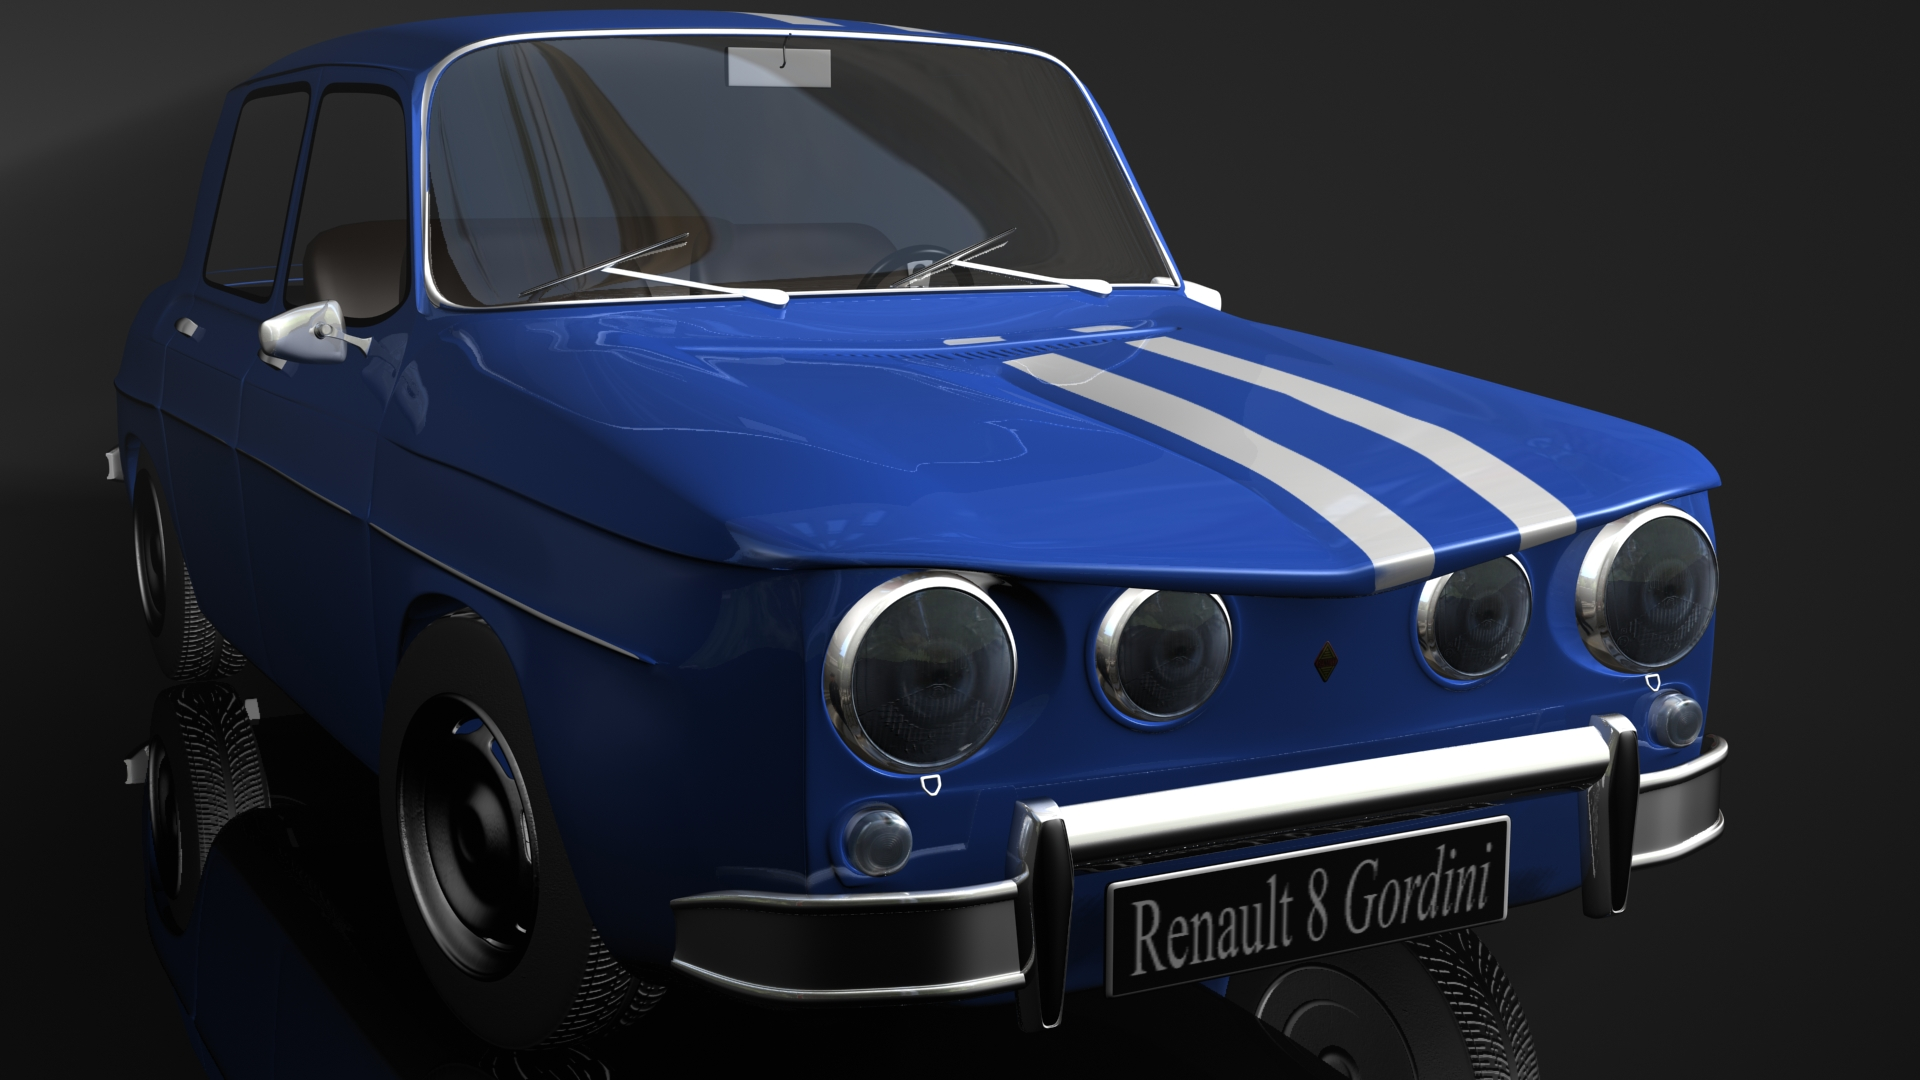 Renault 8 gordini 3d full hd fond d 39 cran and arri re plan for Image de ecran